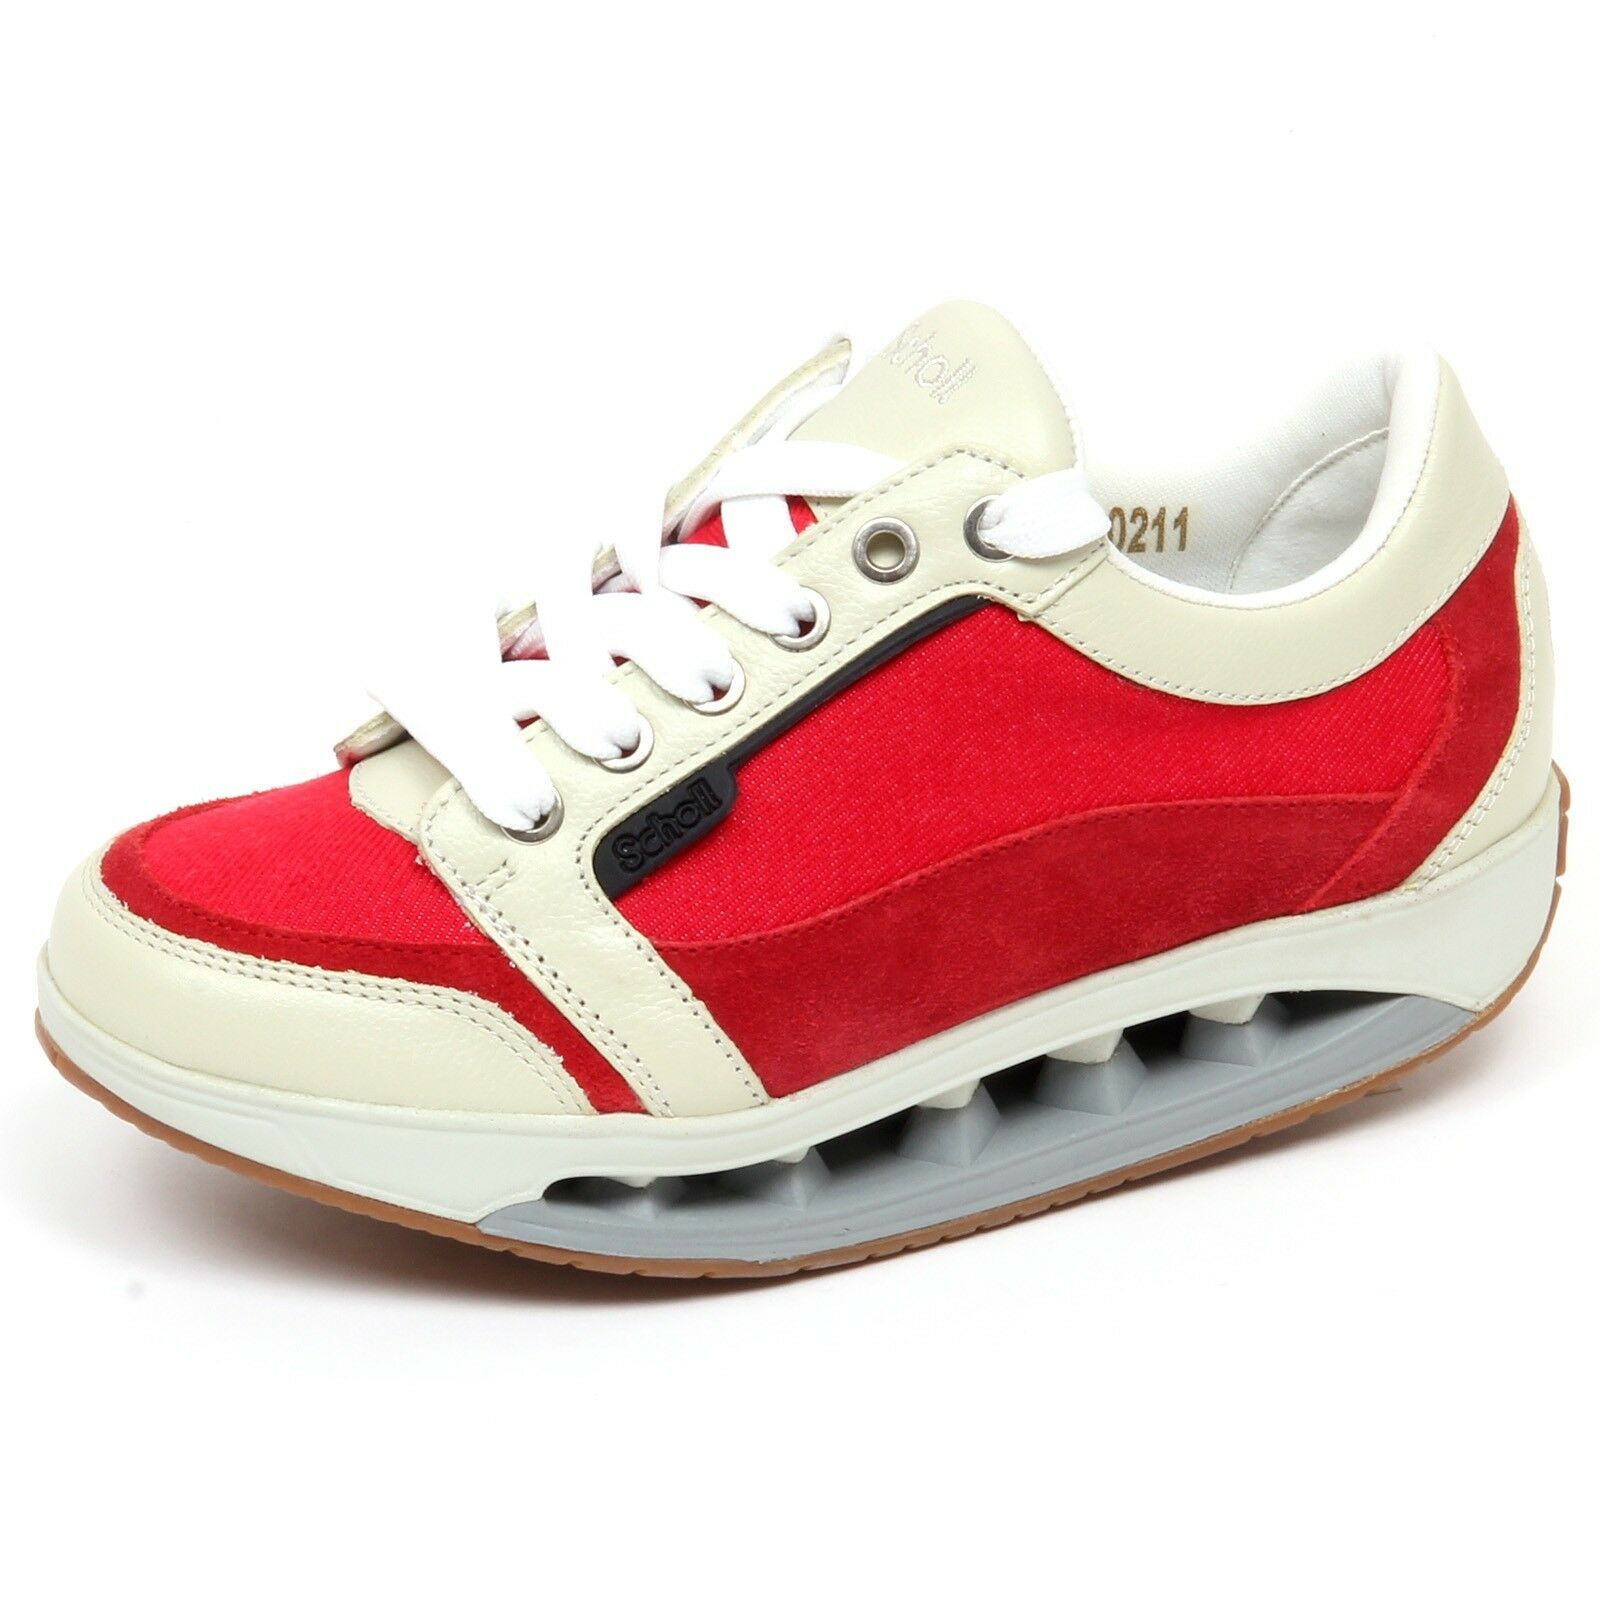 F4064 cortos mujer rojo Ivory scholl Starlit tissue Leather zapatos Woman